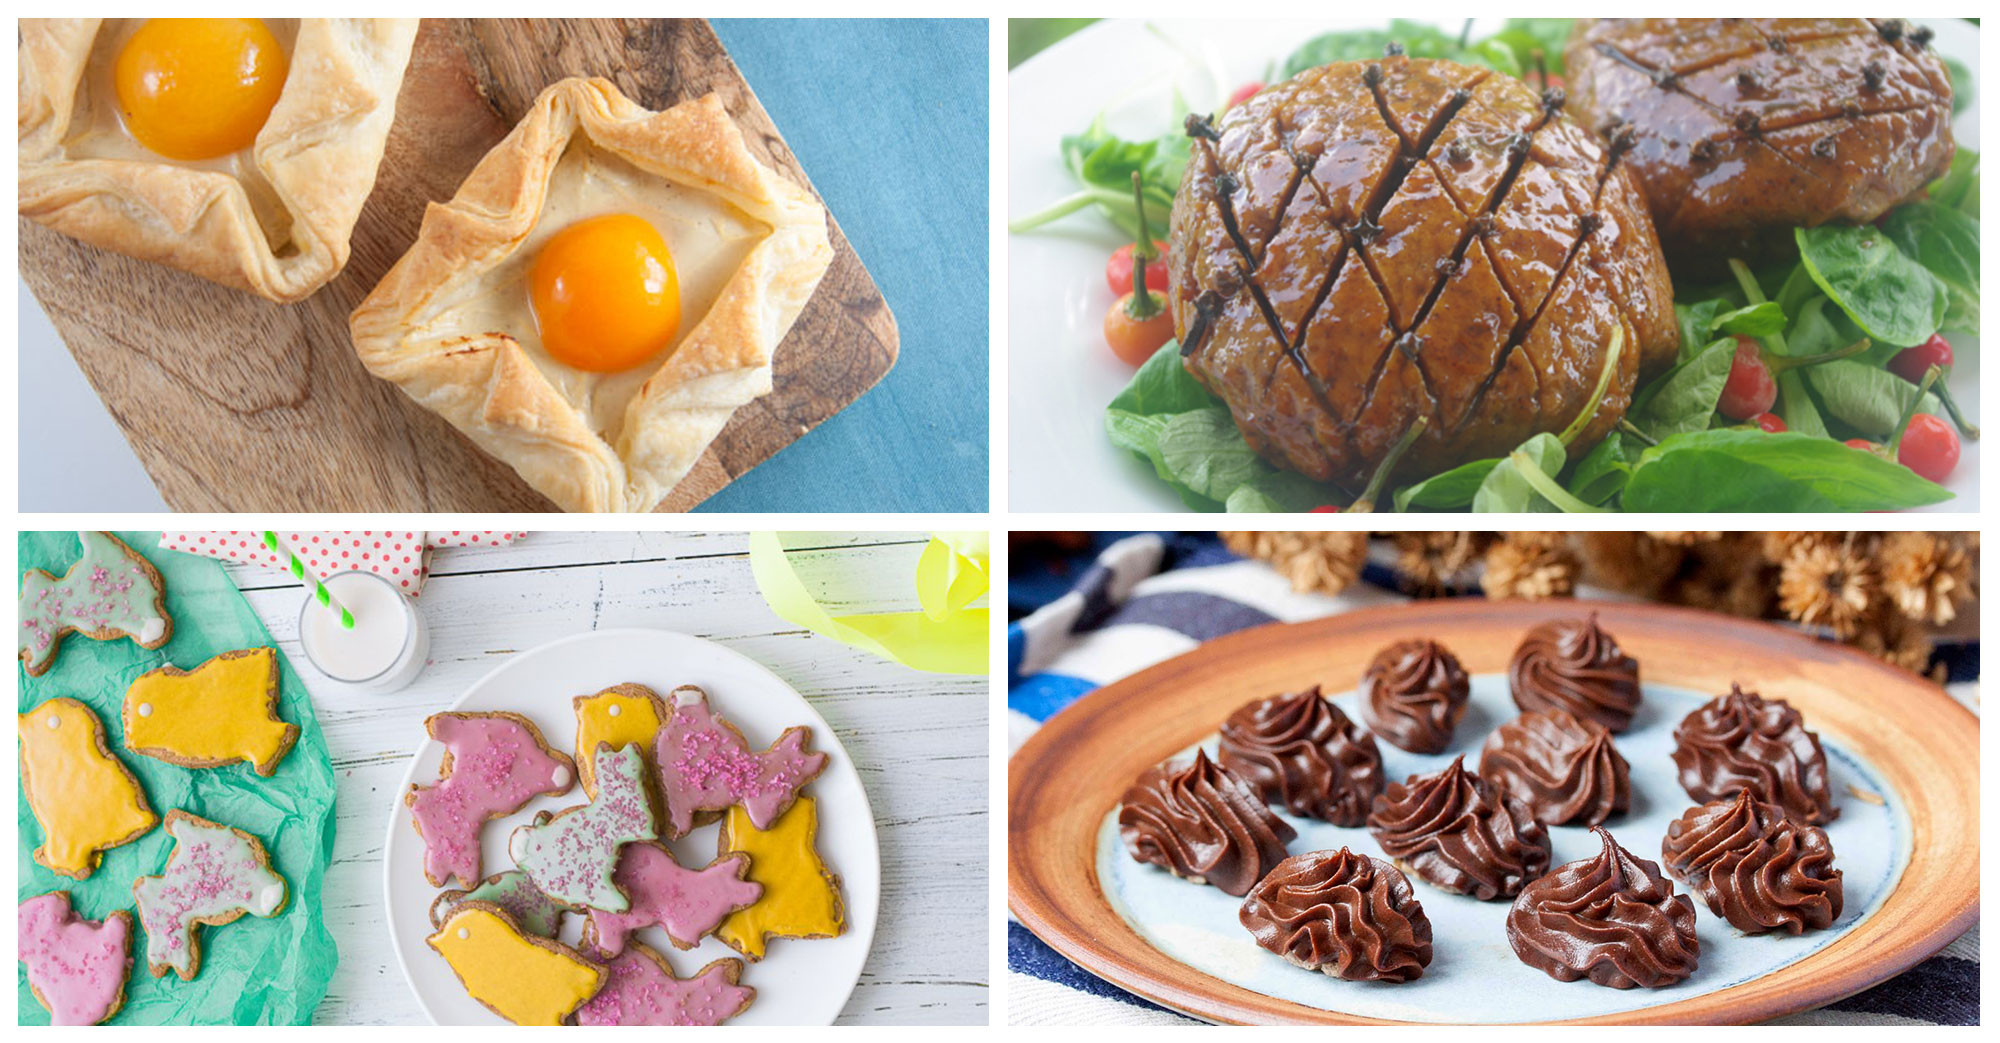 Easter Vegetarian Recipes  26 Vegan Easter Recipes – Candy Cookies Entrées and More